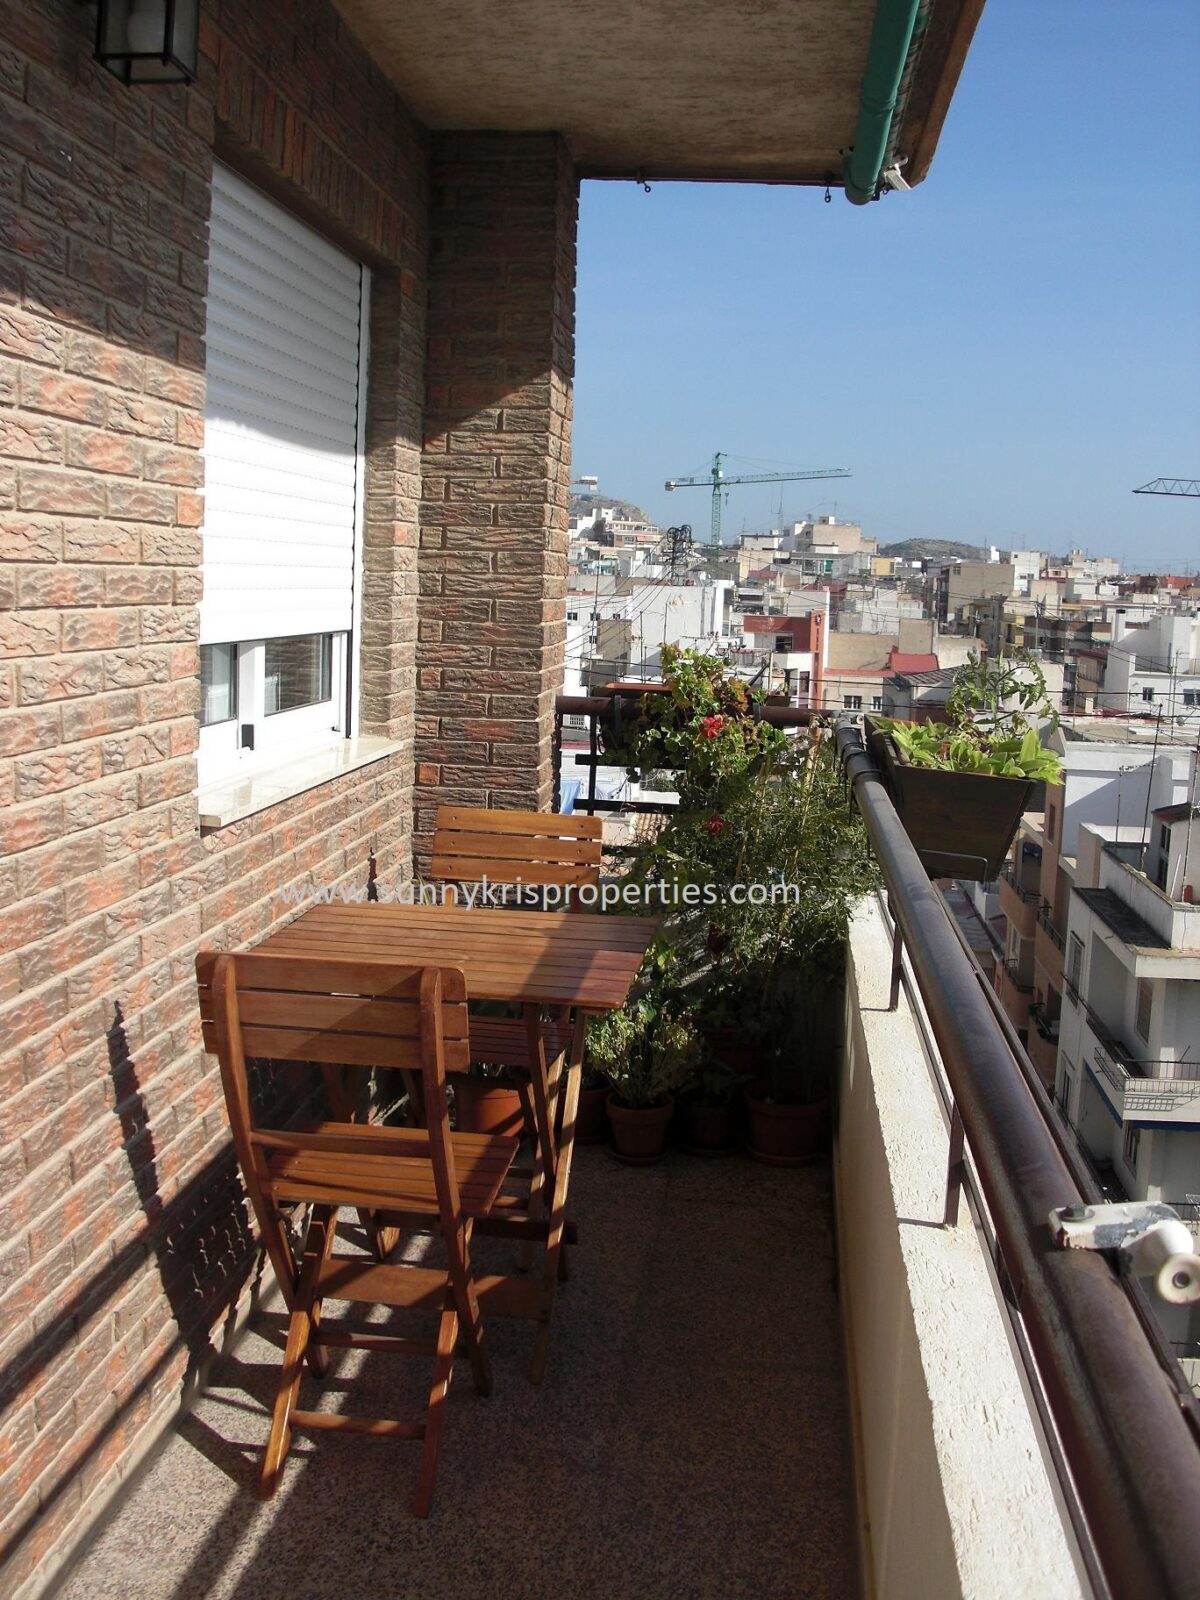 Renovated and Furnished Apartment Next to Plaza de Toros, Alicante